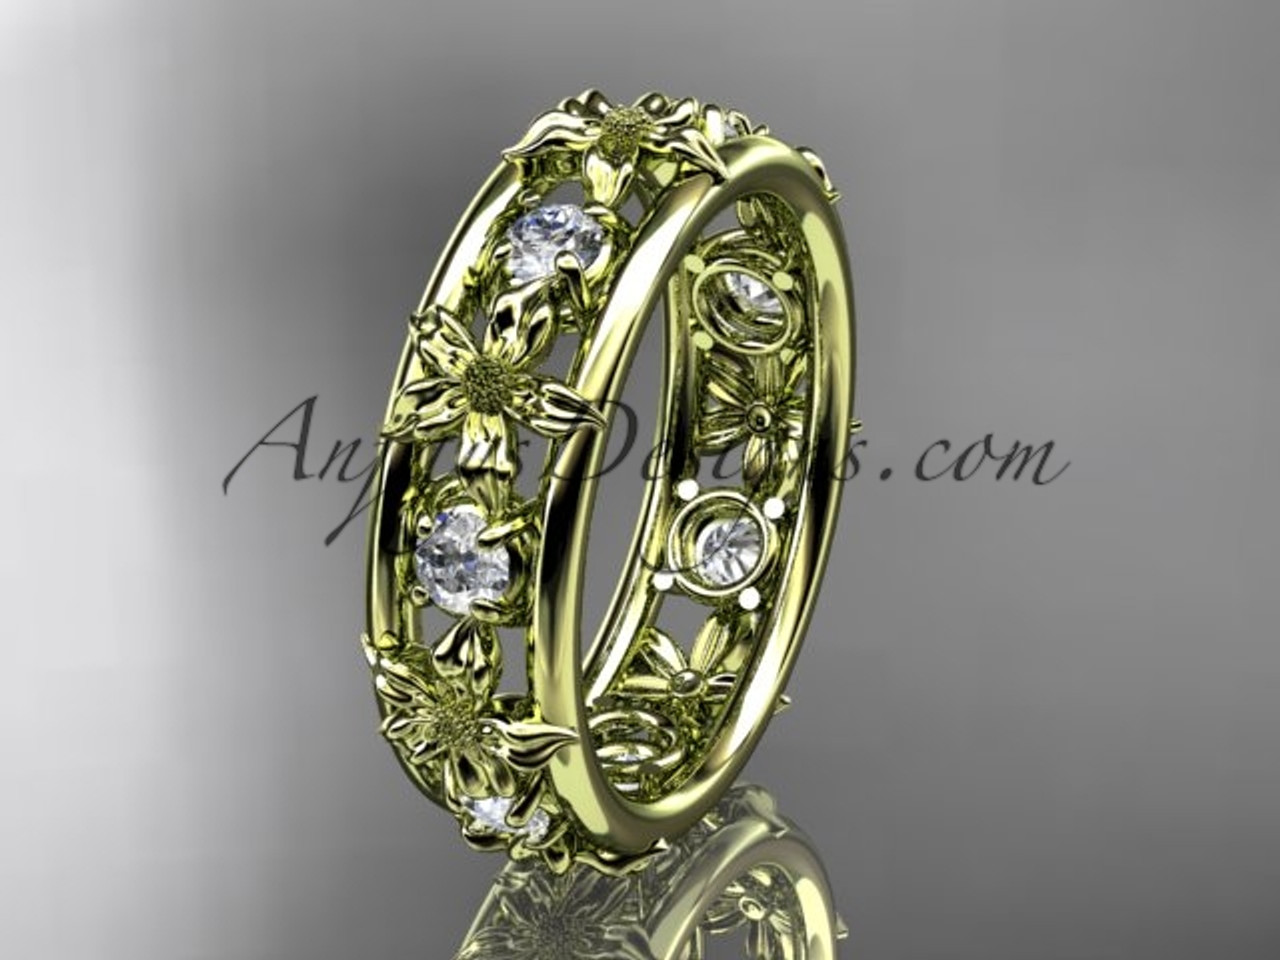 14kt yellow gold diamond leaf wedding ring engagement ring wedding band adlr160b nature inspired - Nature Inspired Wedding Rings